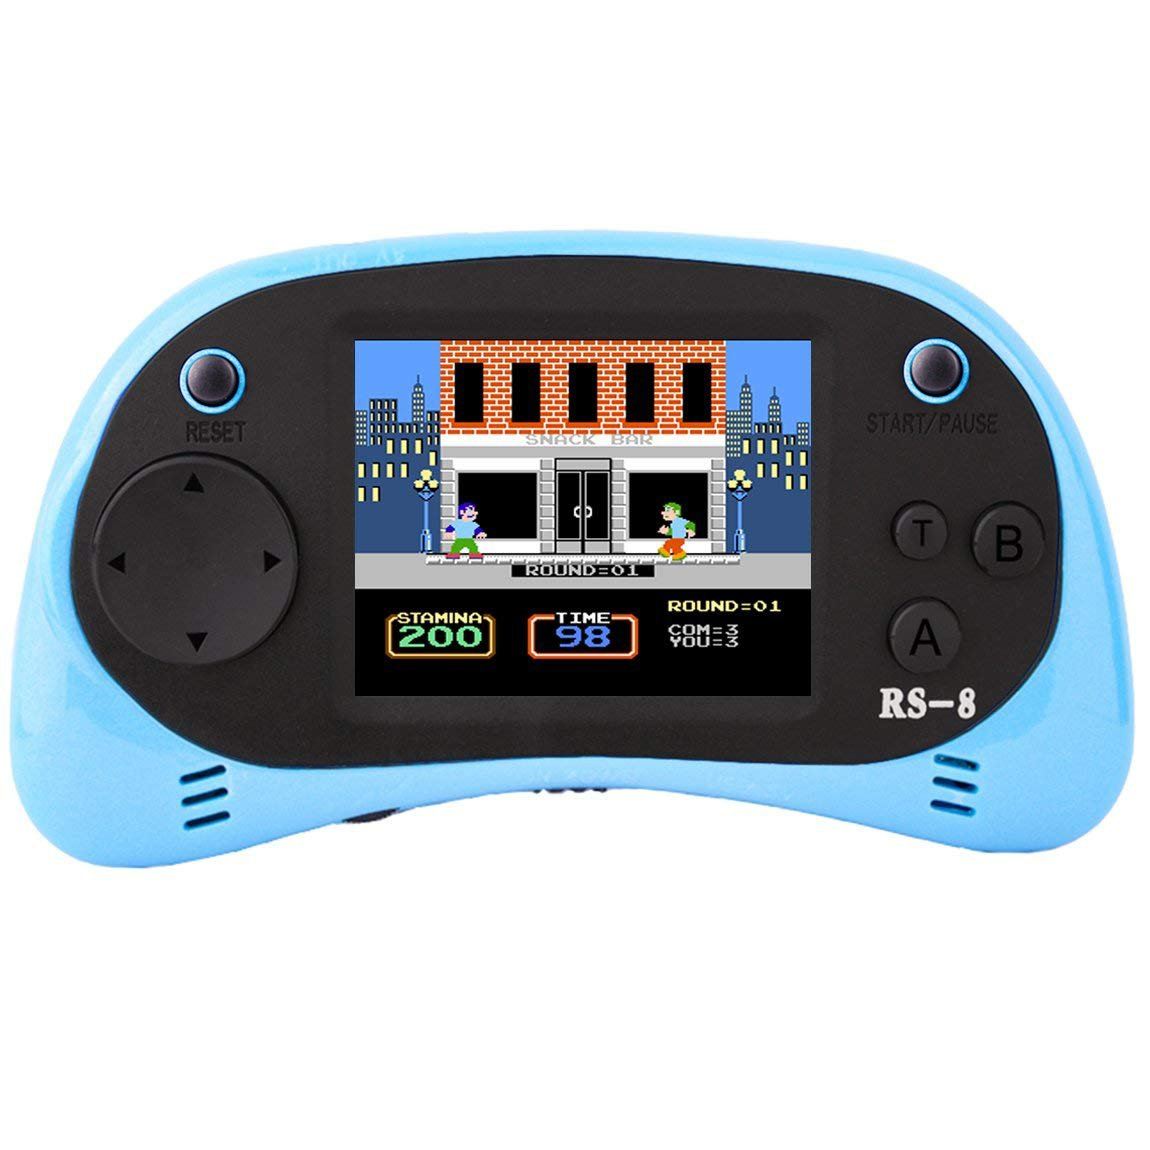 Retro Handheld Game Console & TV Game Controller Built-in 260 Classic Old Style Video Games with 2.5'' Color LCD Screen Portable Arcade Gaming System Birthday Gift for Children (Light Blue)